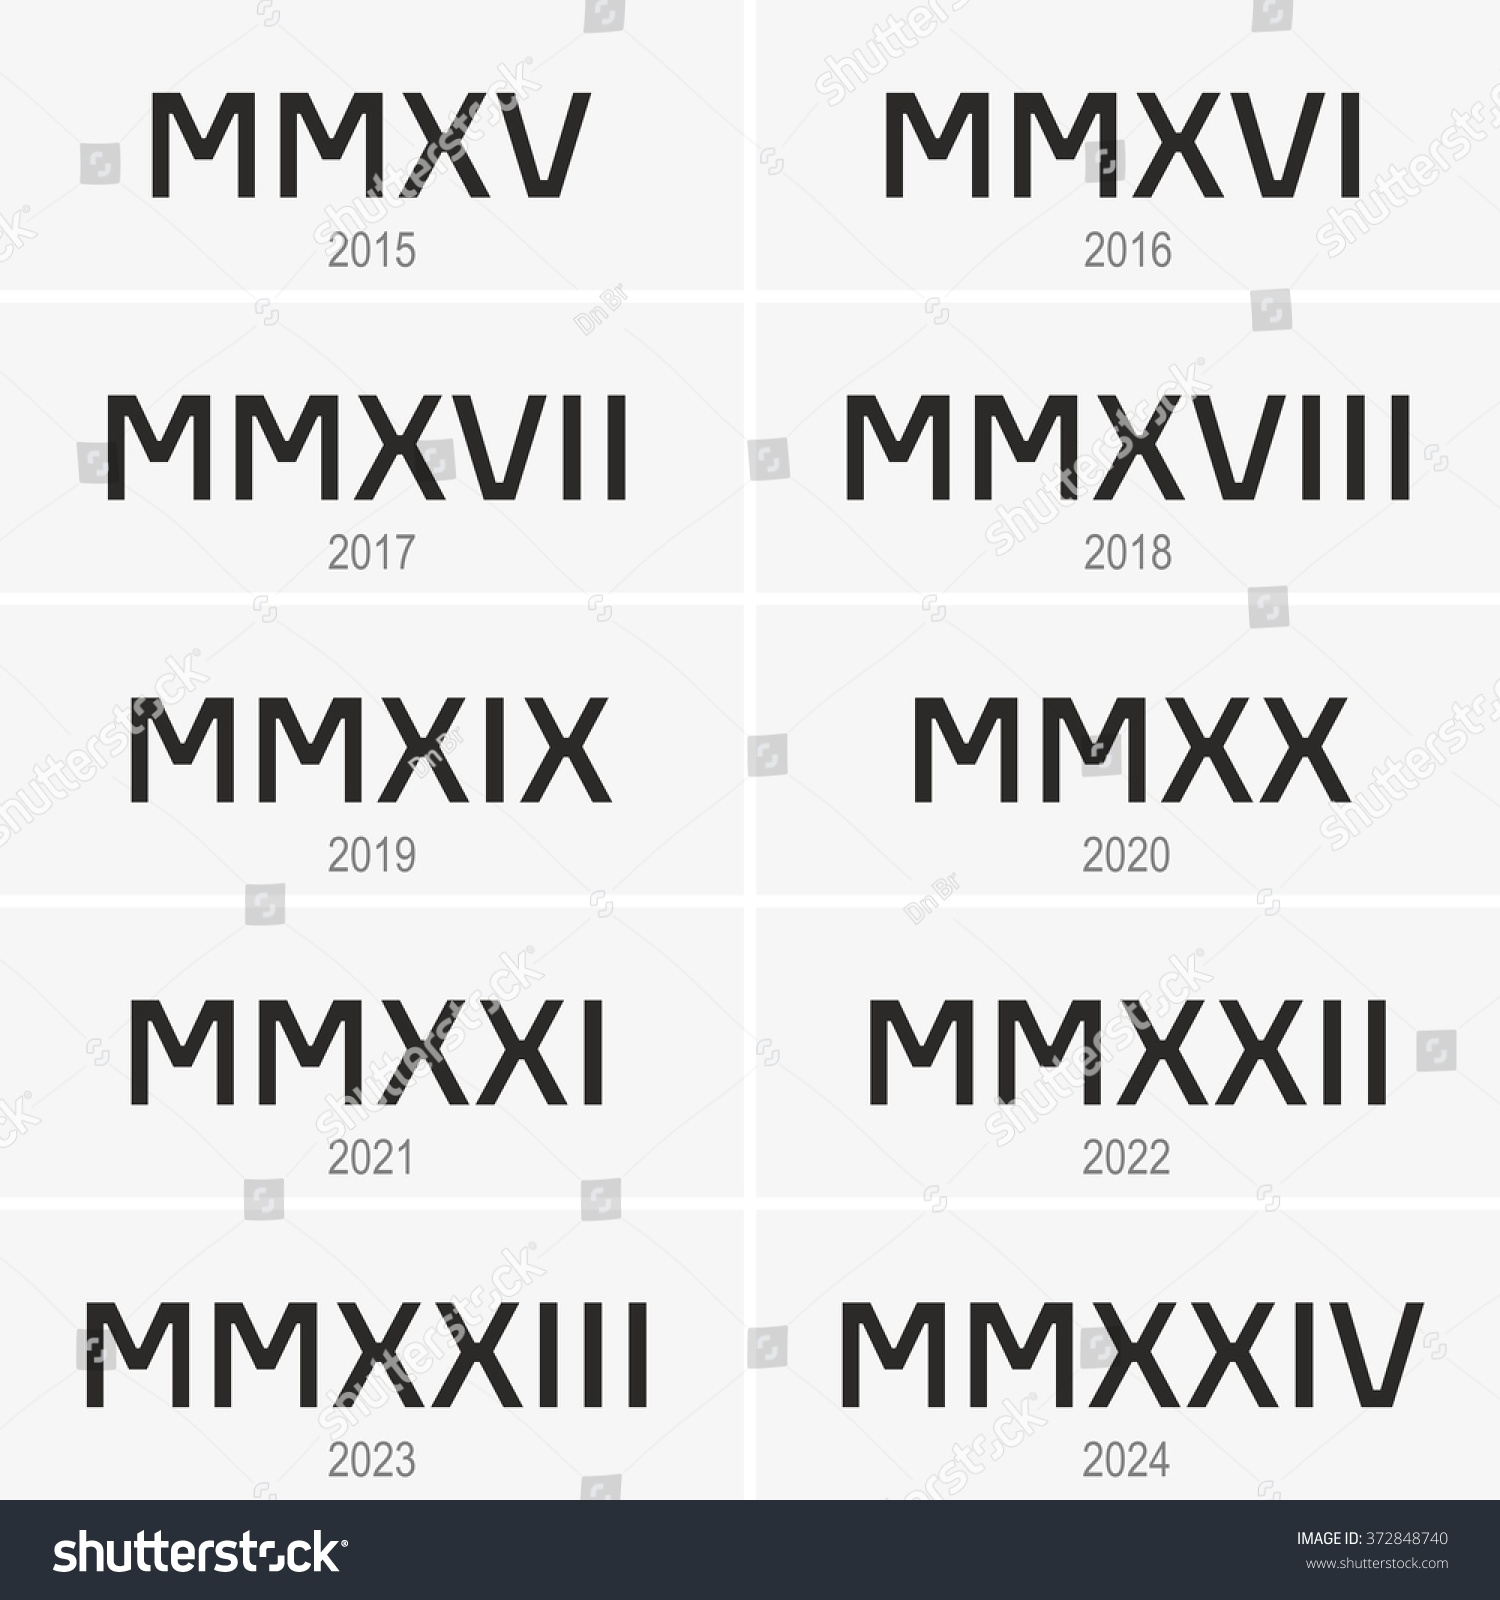 How to write 2014 in roman numerals